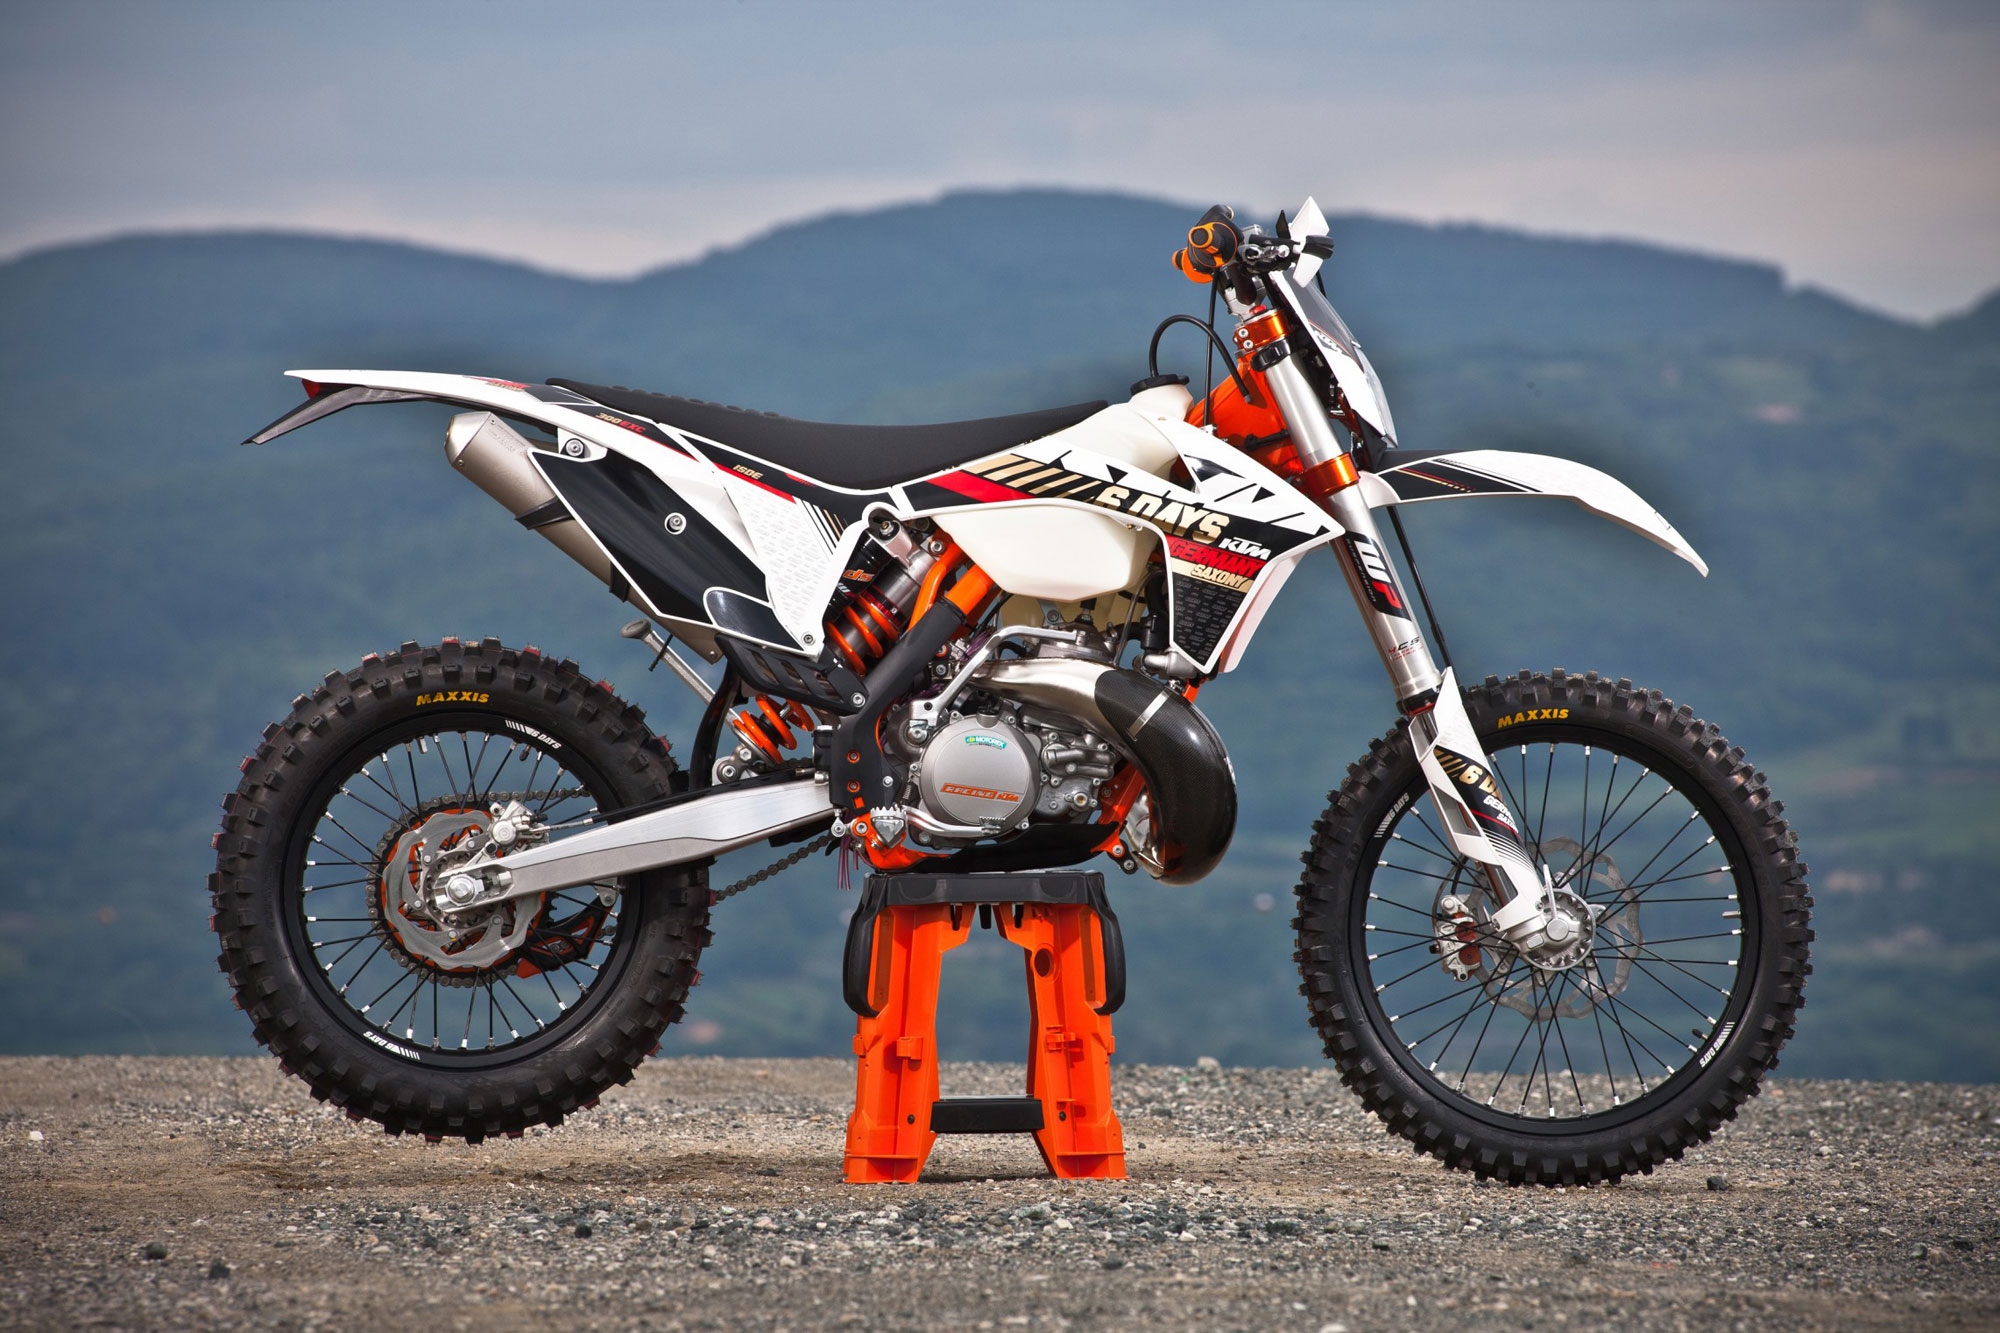 KTM 300 MXC 2005 images #86437